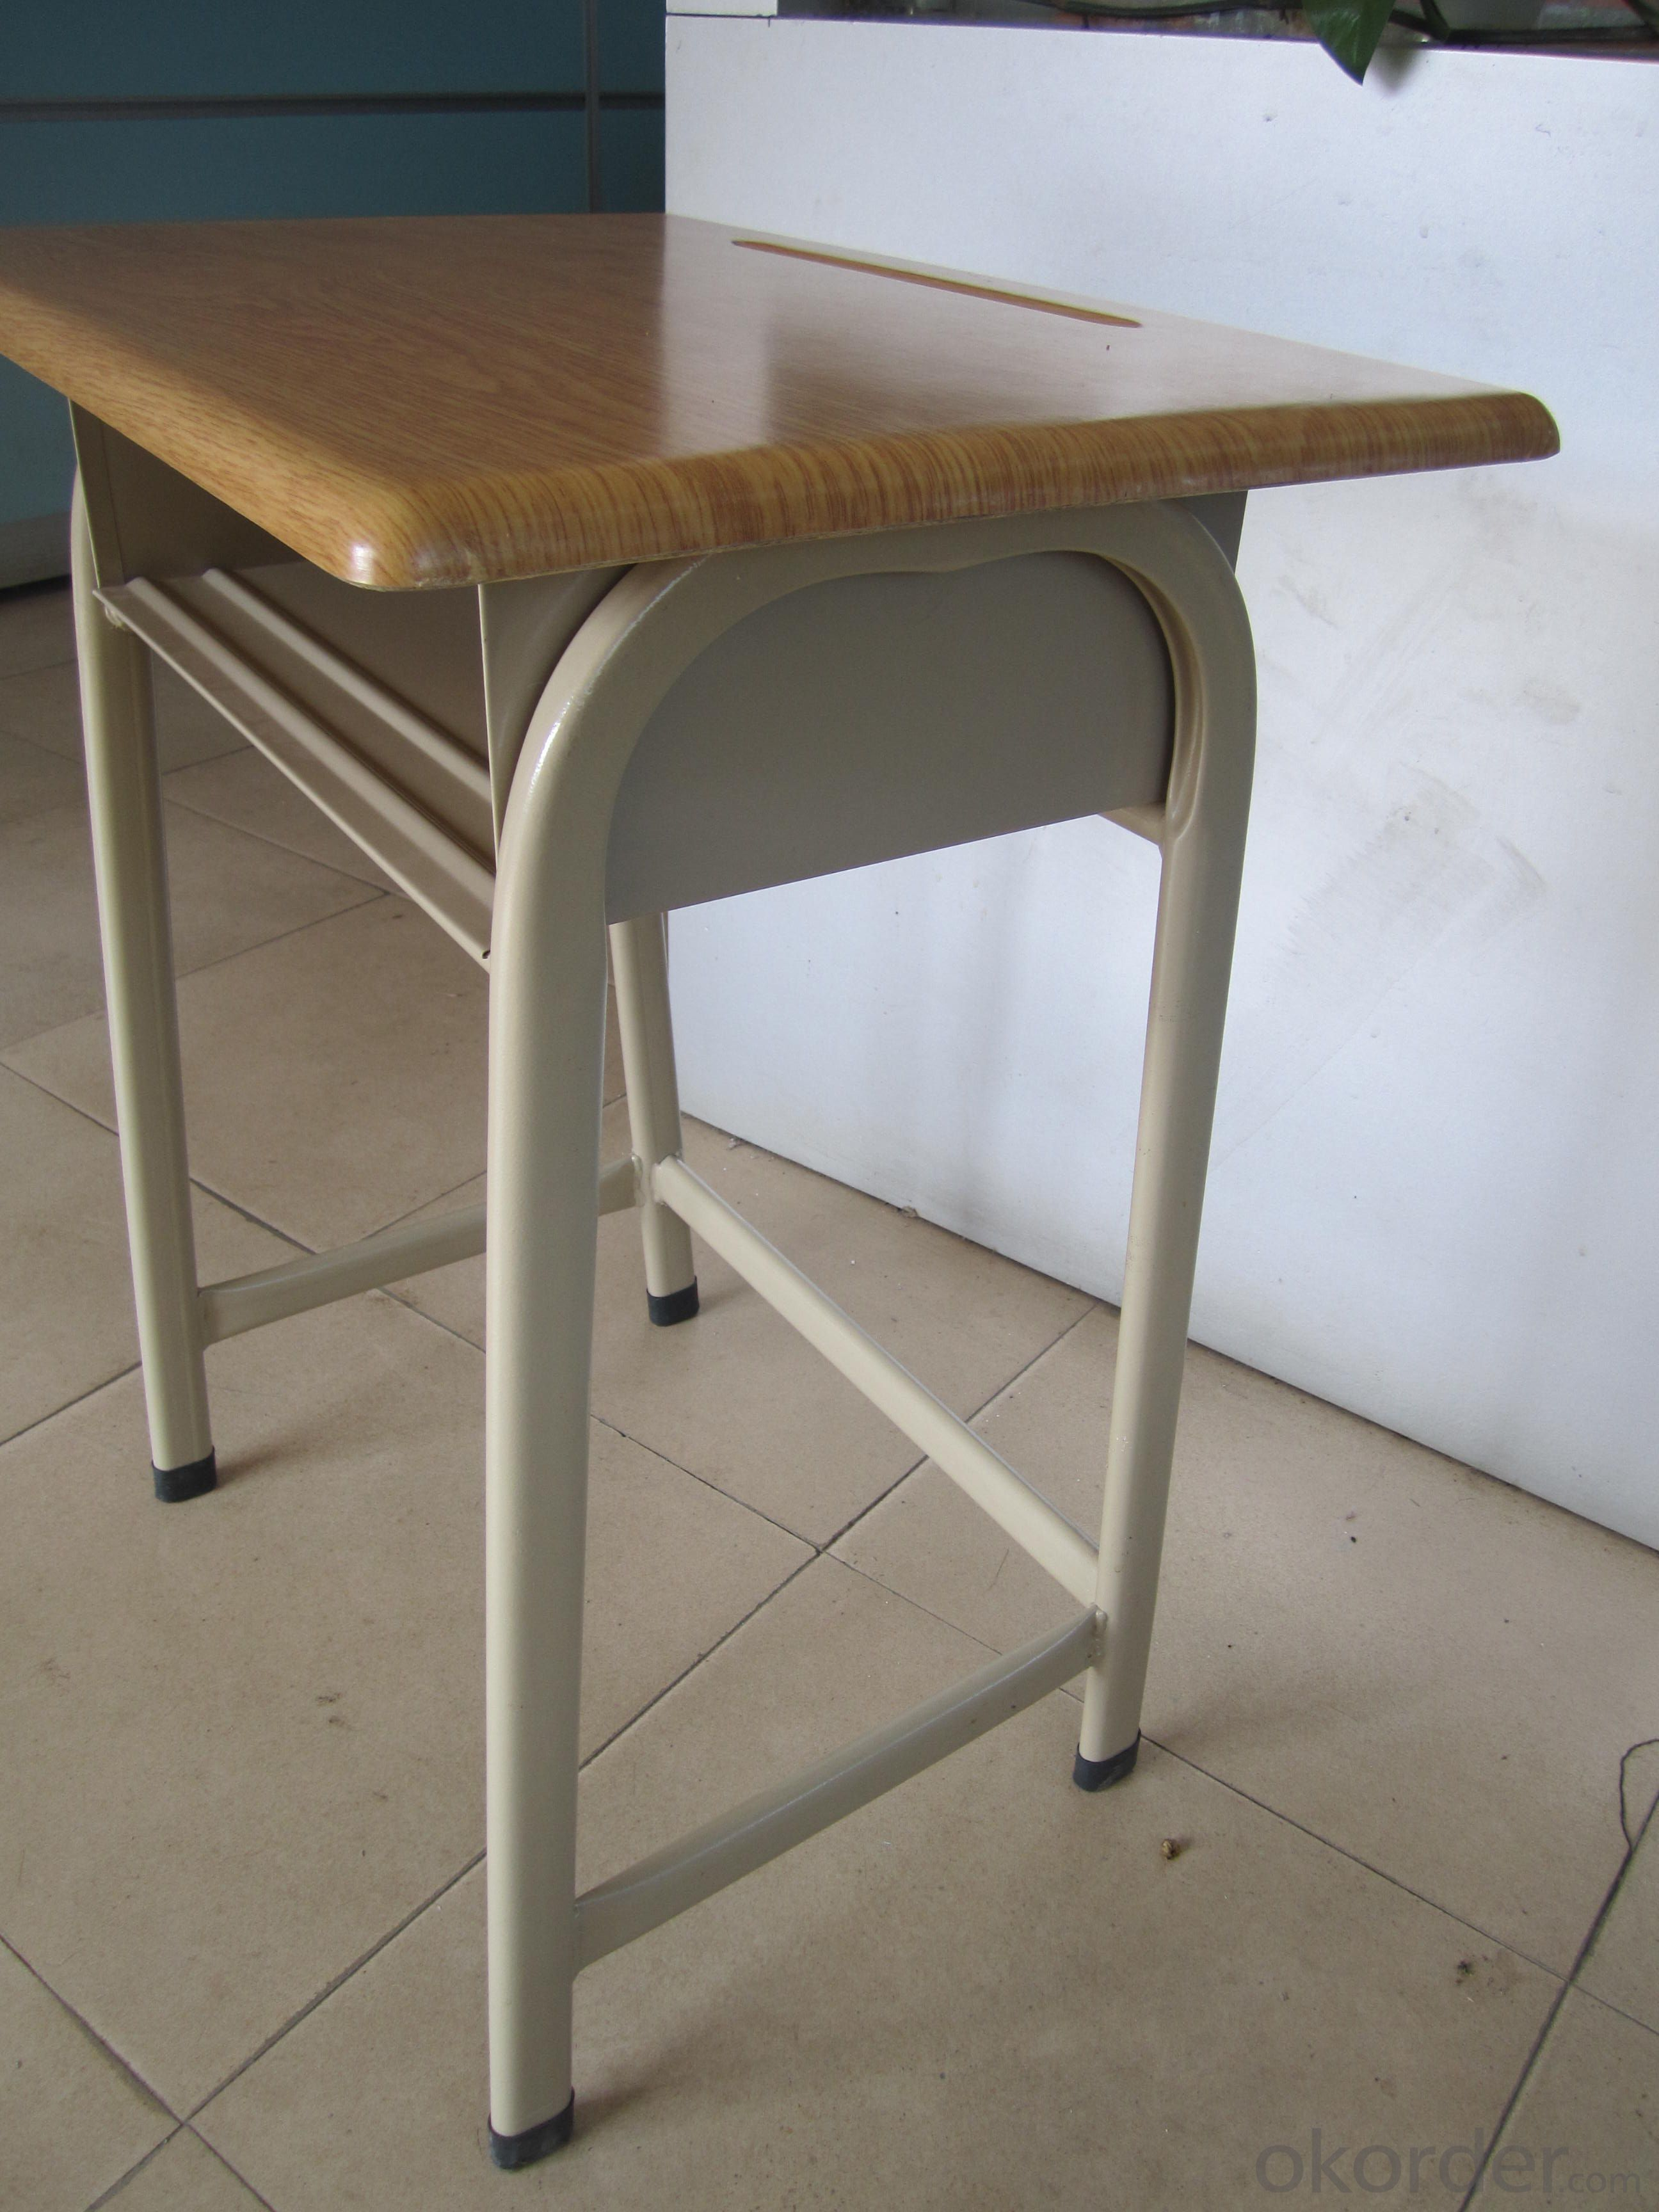 School desk and chair,student desk